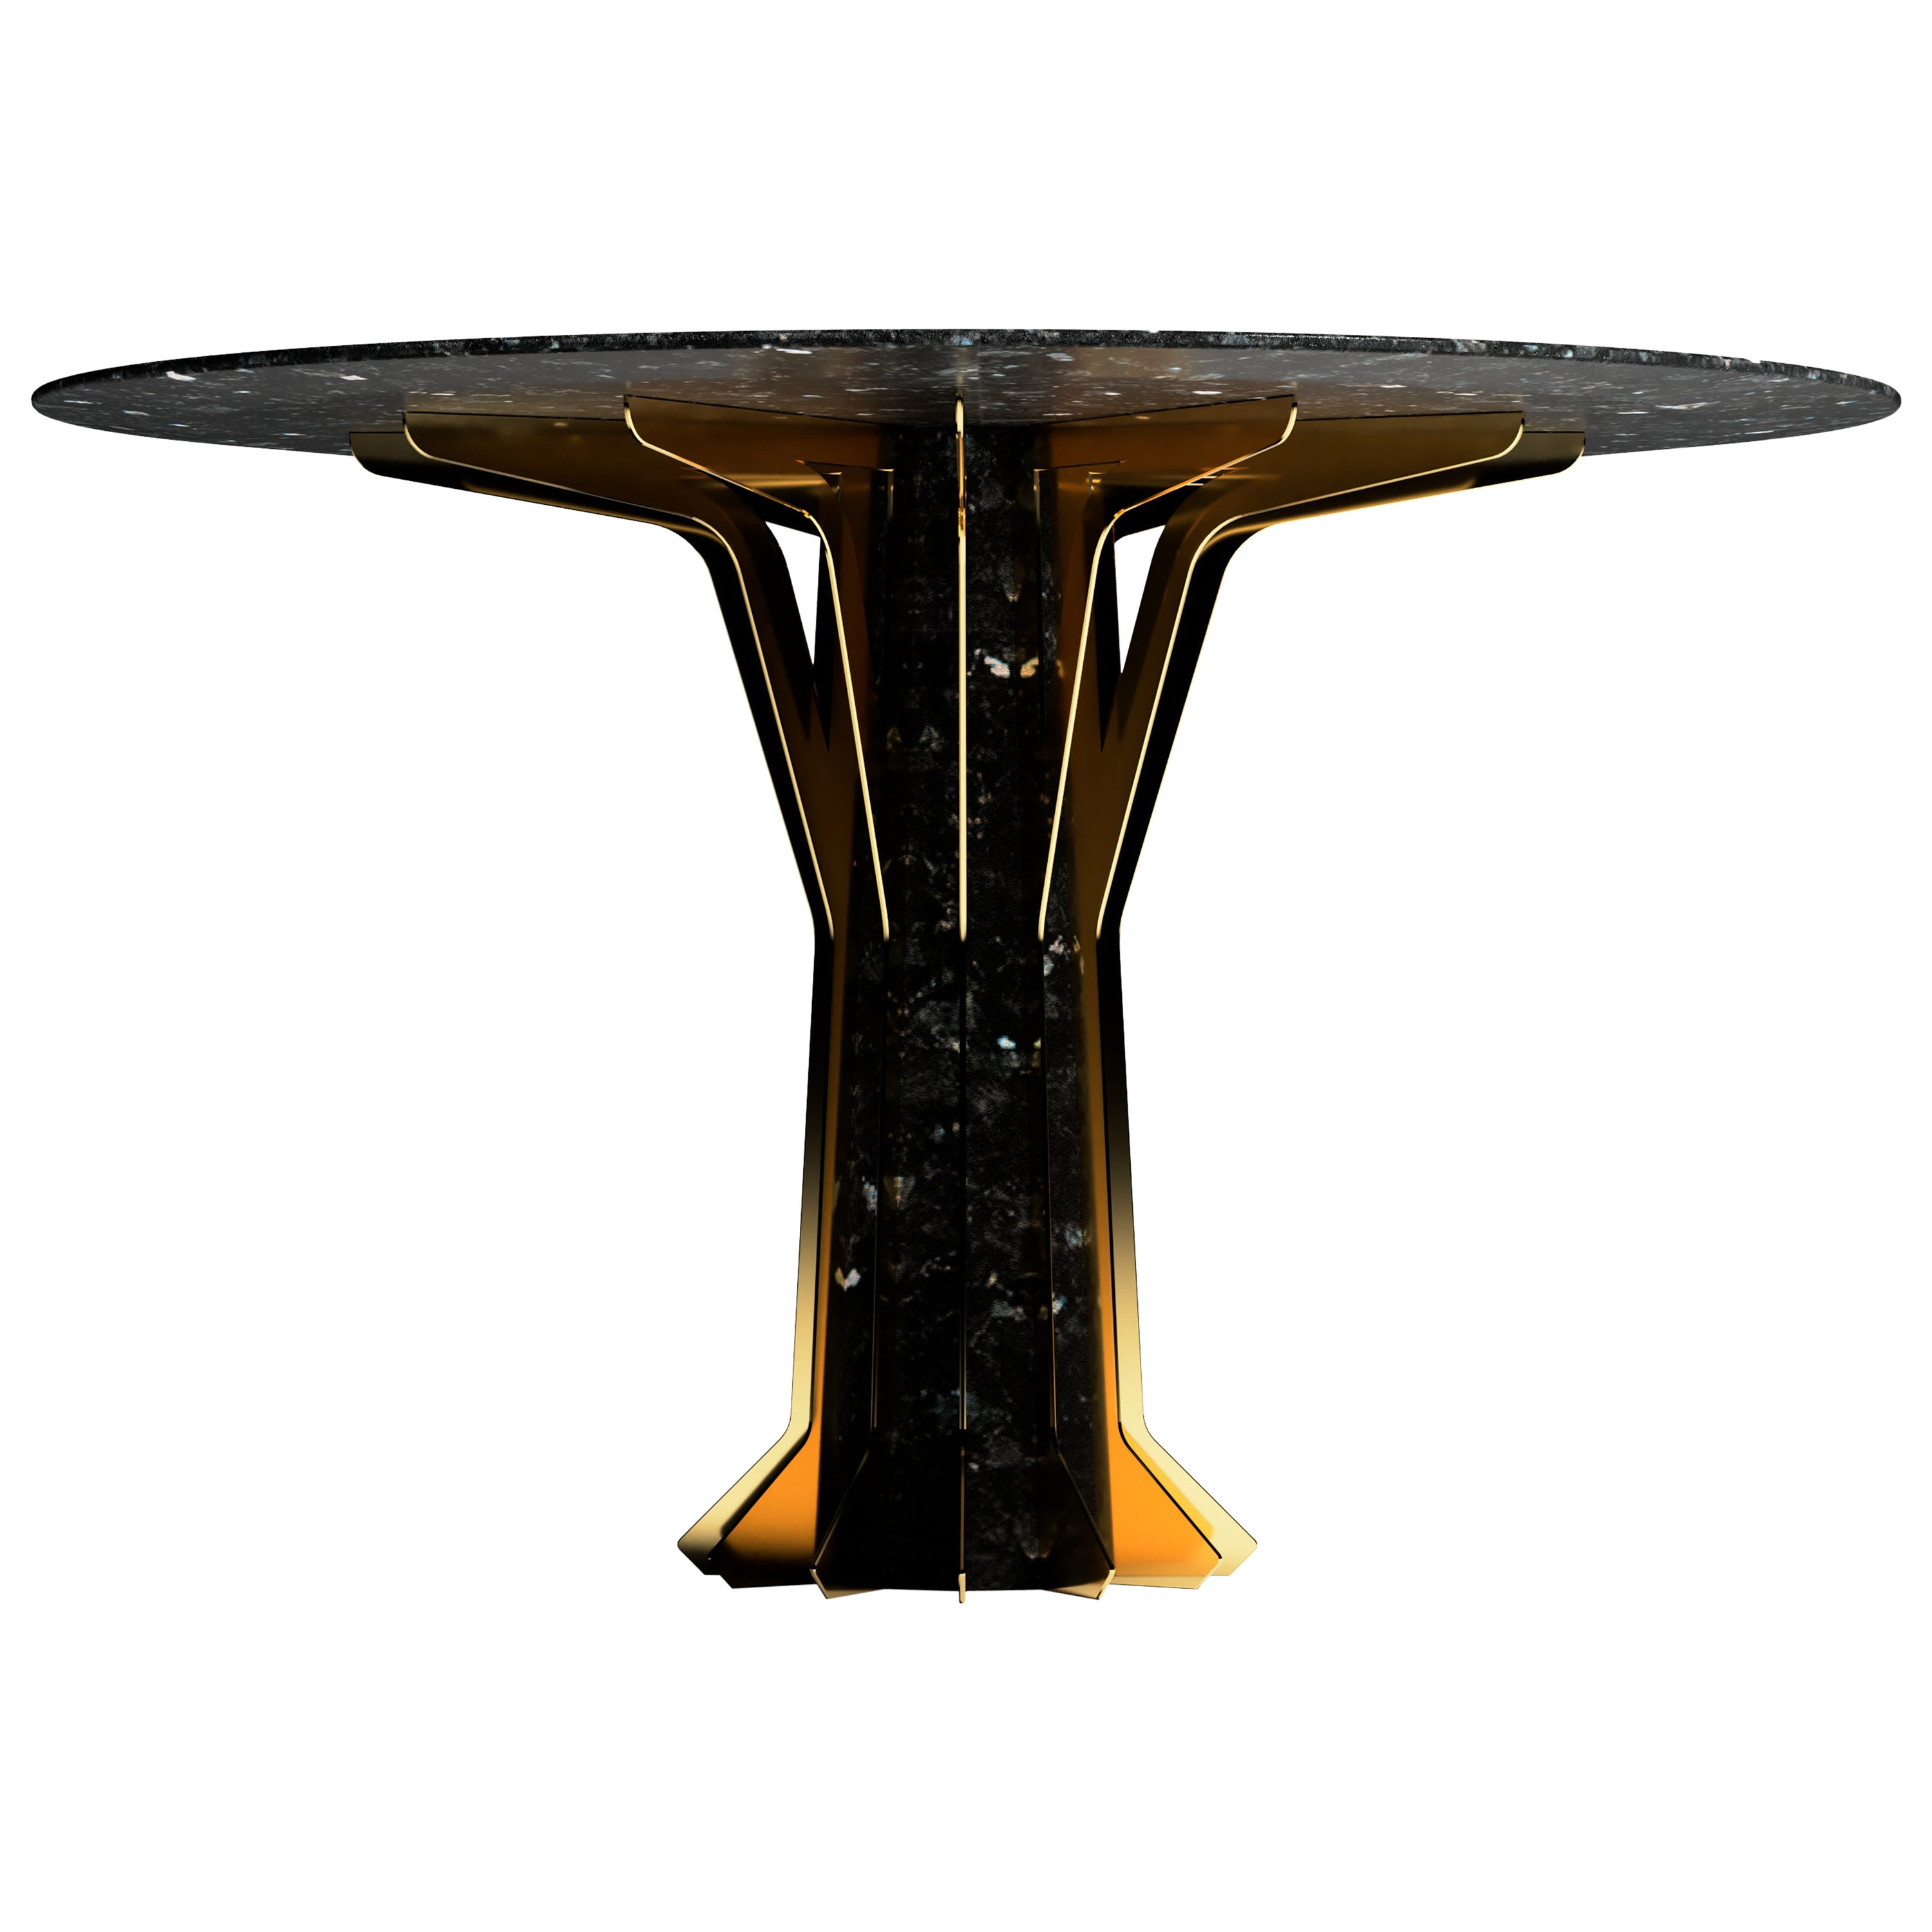 """""""The Icar's Wings"""" One of a Kind Center Table by Grzegorz Majka"""